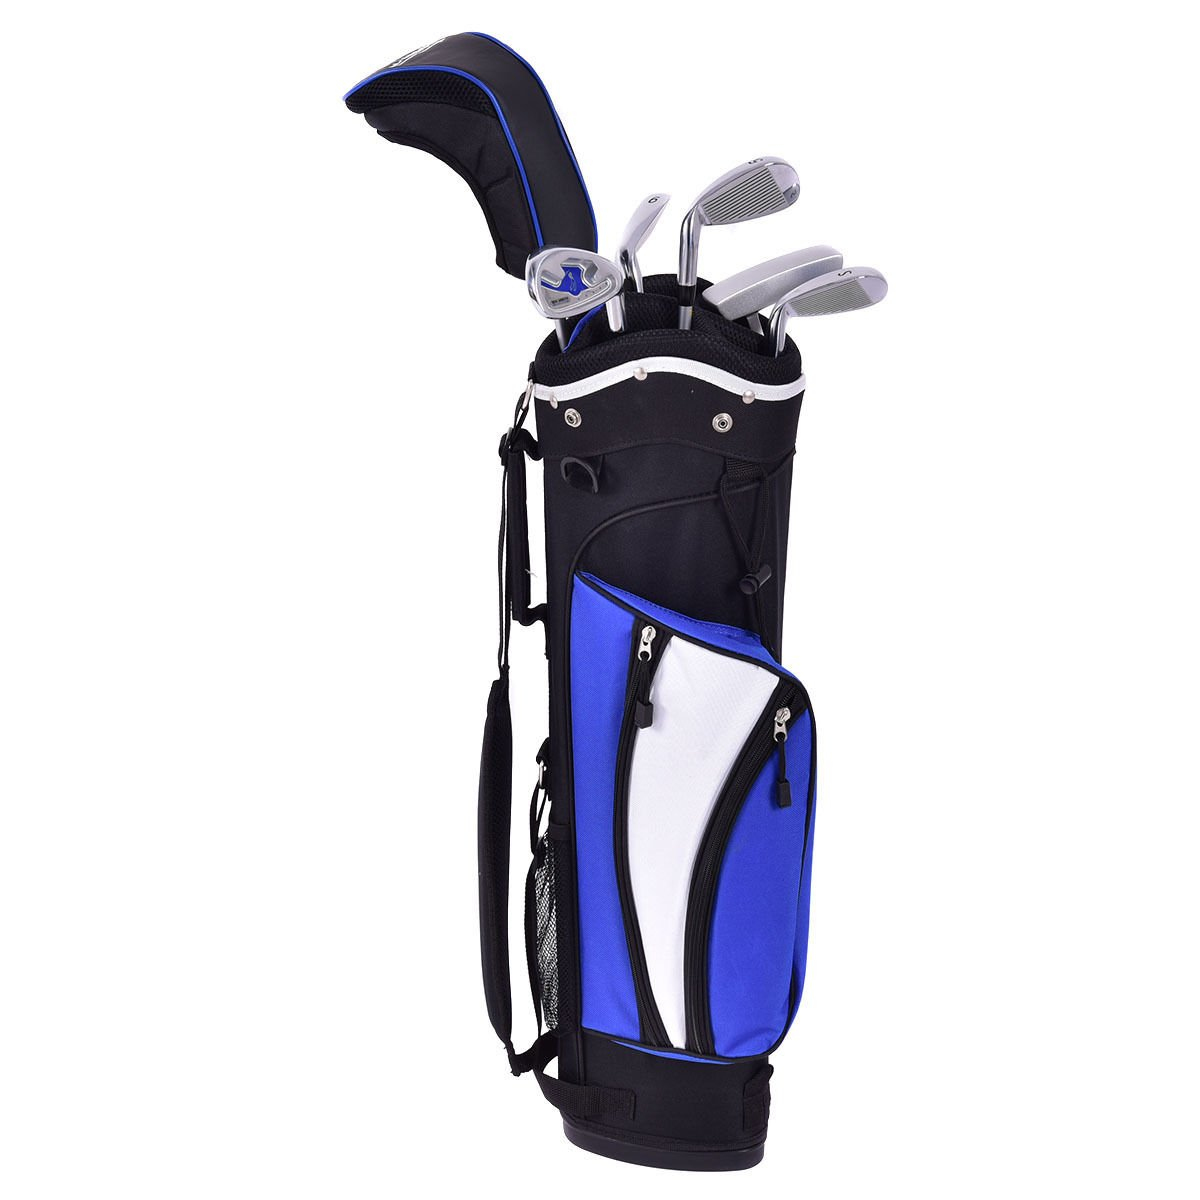 TANGKULA Junior Golf Club Set with Stand Bag 6 Piece Wood Iron Putter for Ages 8-10